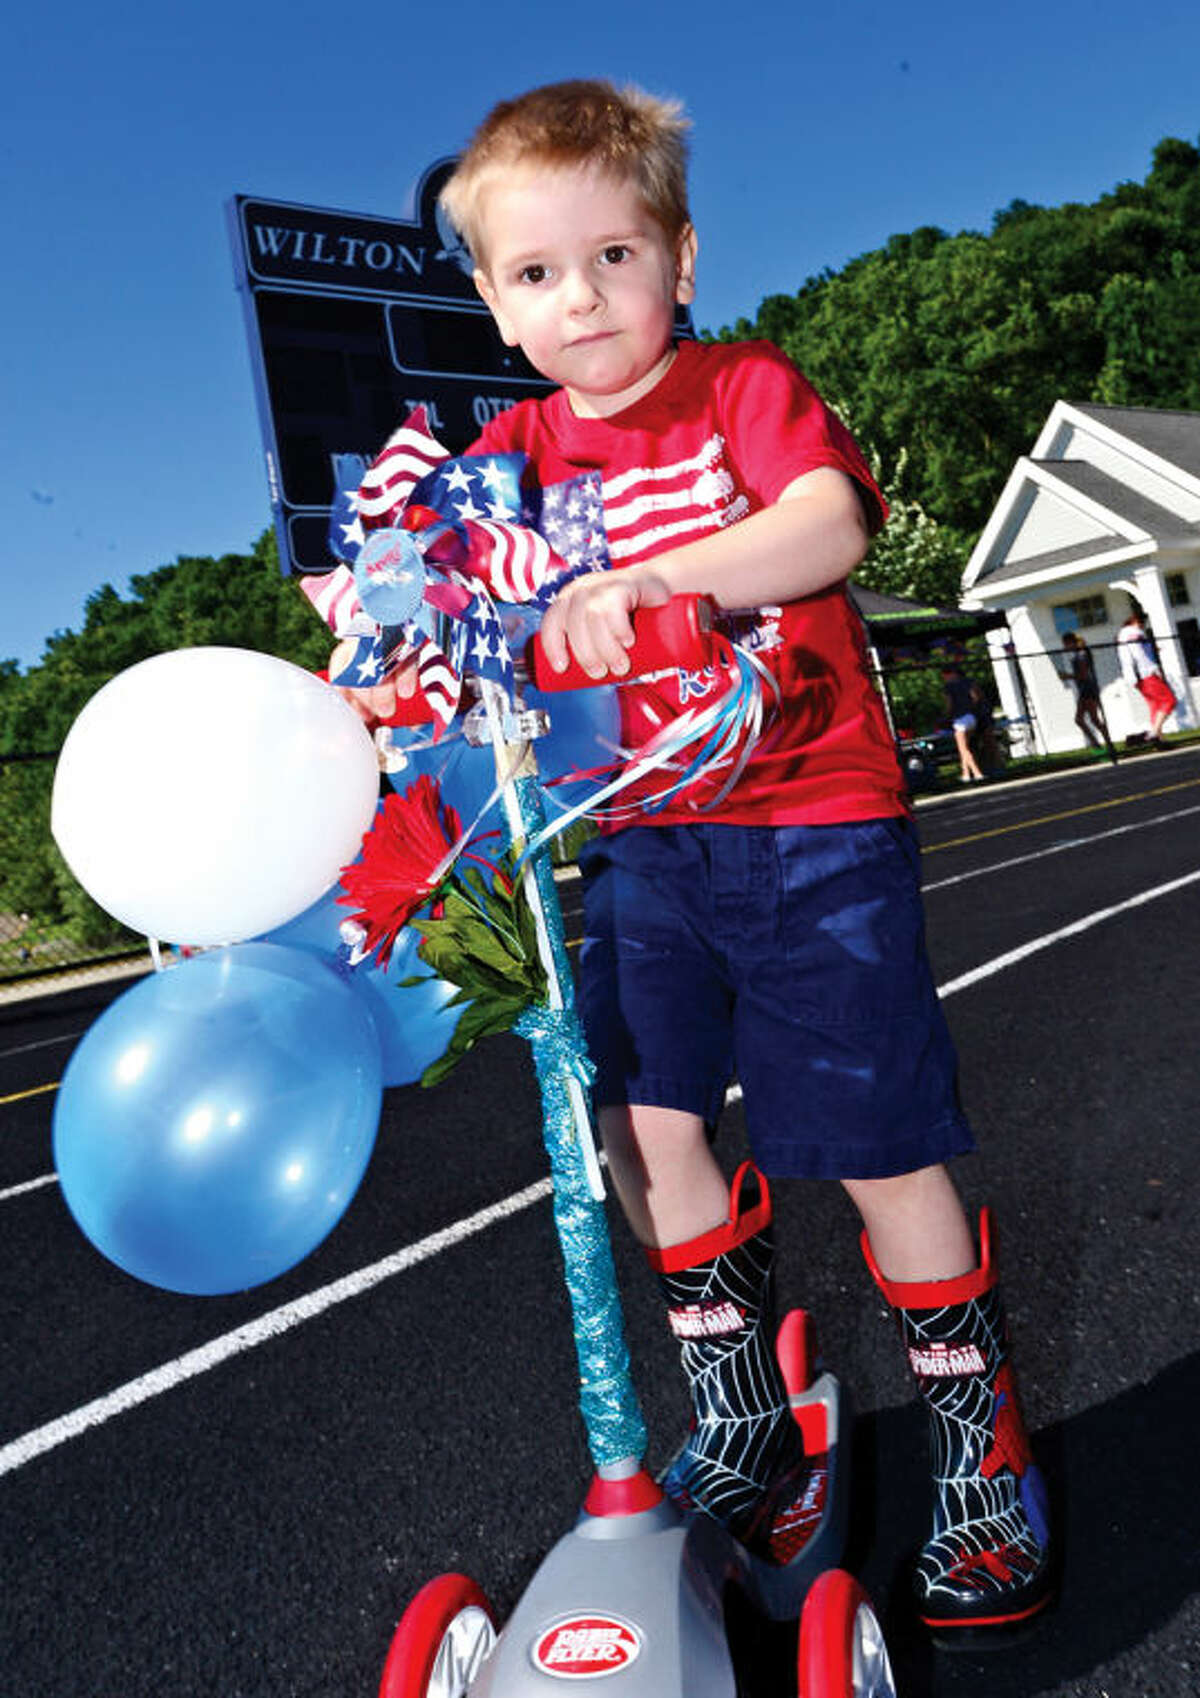 Hour photo / Erik Trautmann Aiden Harrell, 3, participates in the Cannondale Bike Rodeo at Fujitani Field as part of Wilton's Independence Day festivities Saturday.